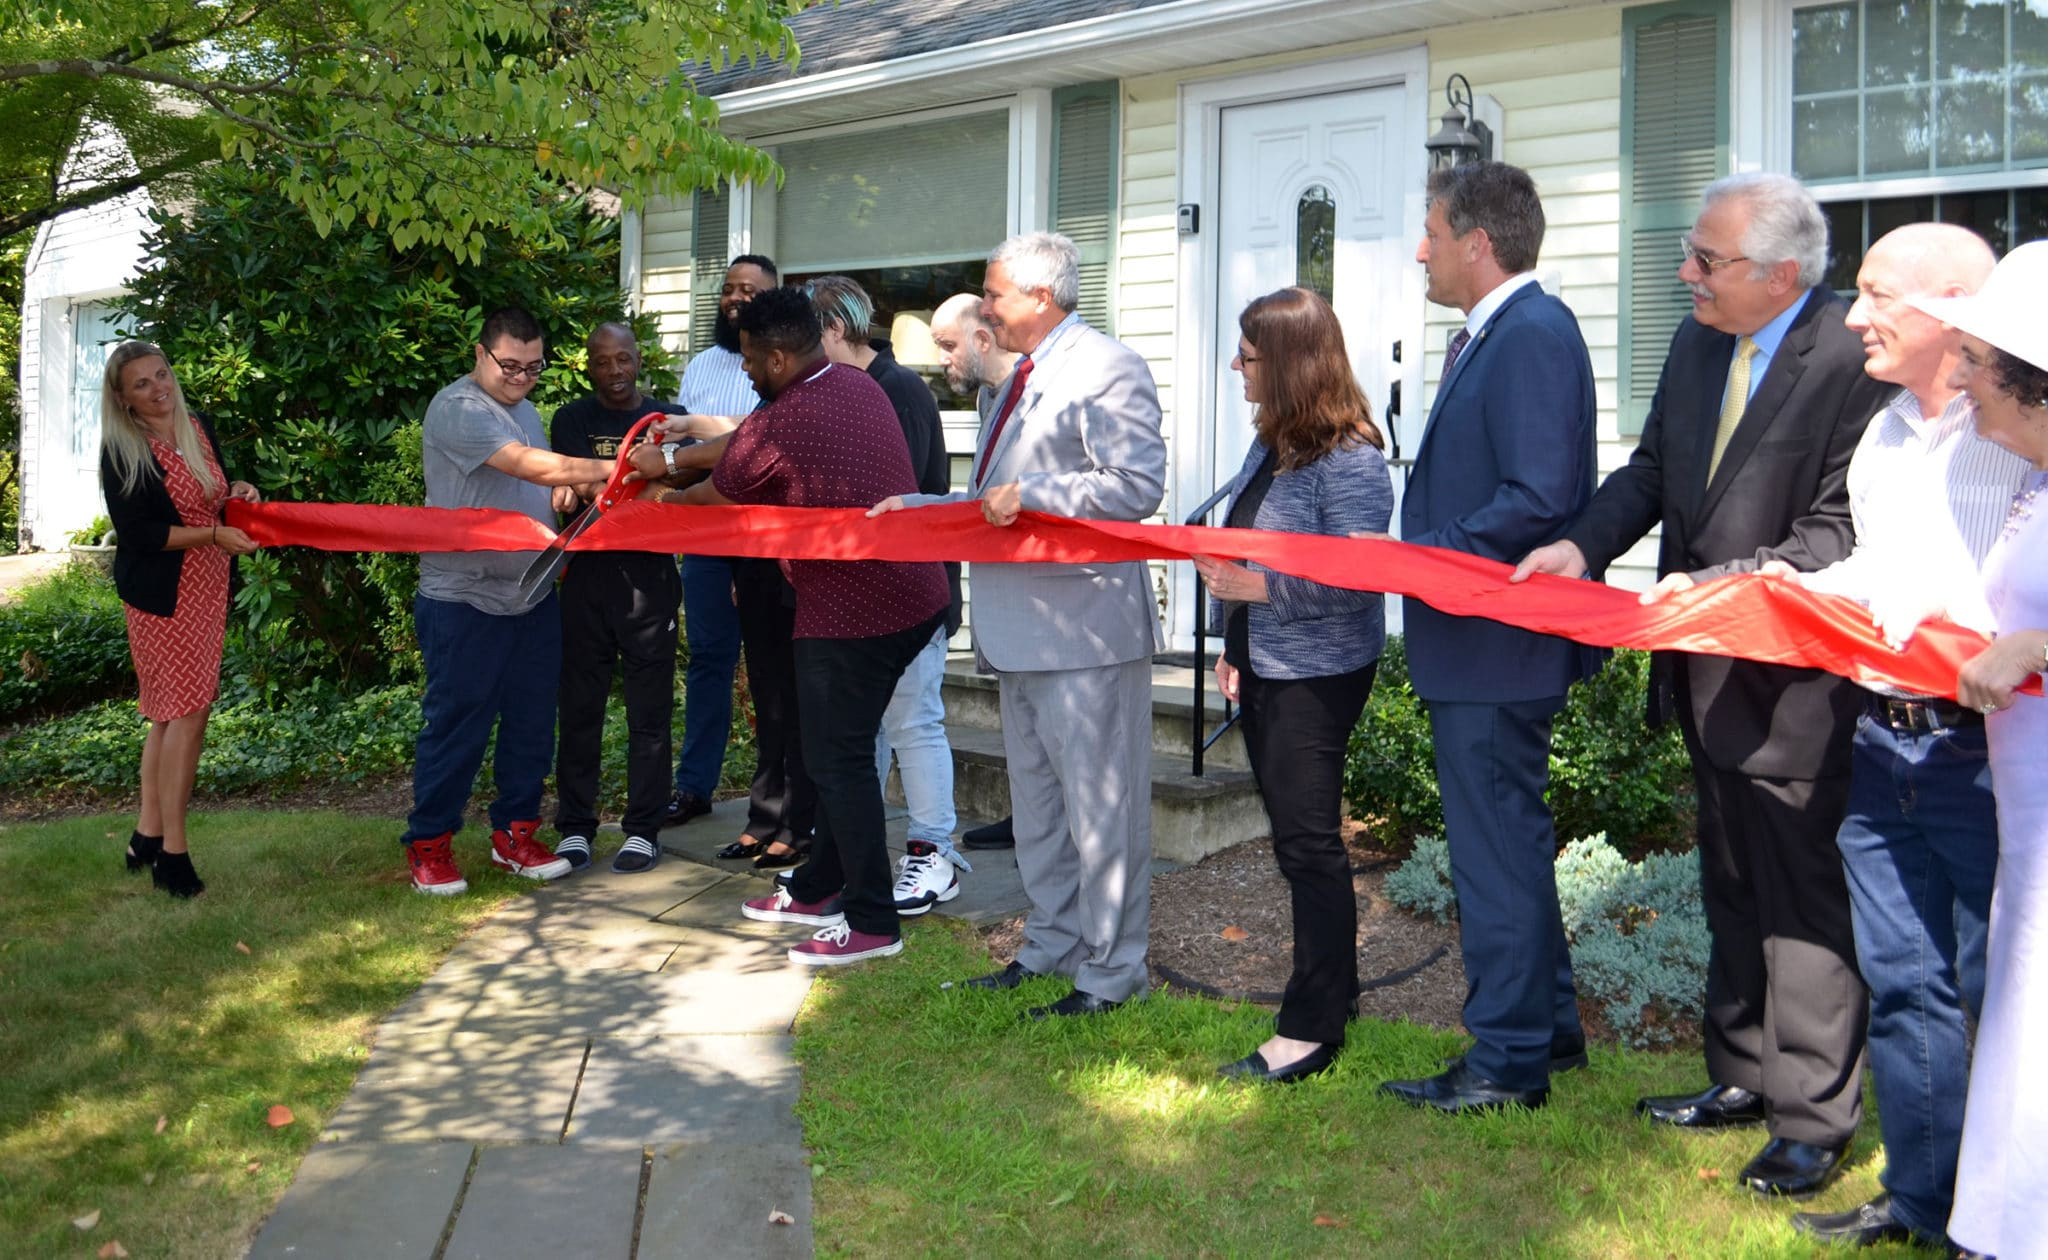 Community Options, Inc. of Mercer County celebrated the grand opening of a new home in Princeton, NJ with a ribbon cutting ceremony at 11 a.m.. Senator Kip Bateman, Assemblyman Andrew Zwicker, Mayor Liz Lempert and members of the Princeton Council as well as Board Members- Phyllis L. Marchand, Phil Lian, James Spano, were in attendance.